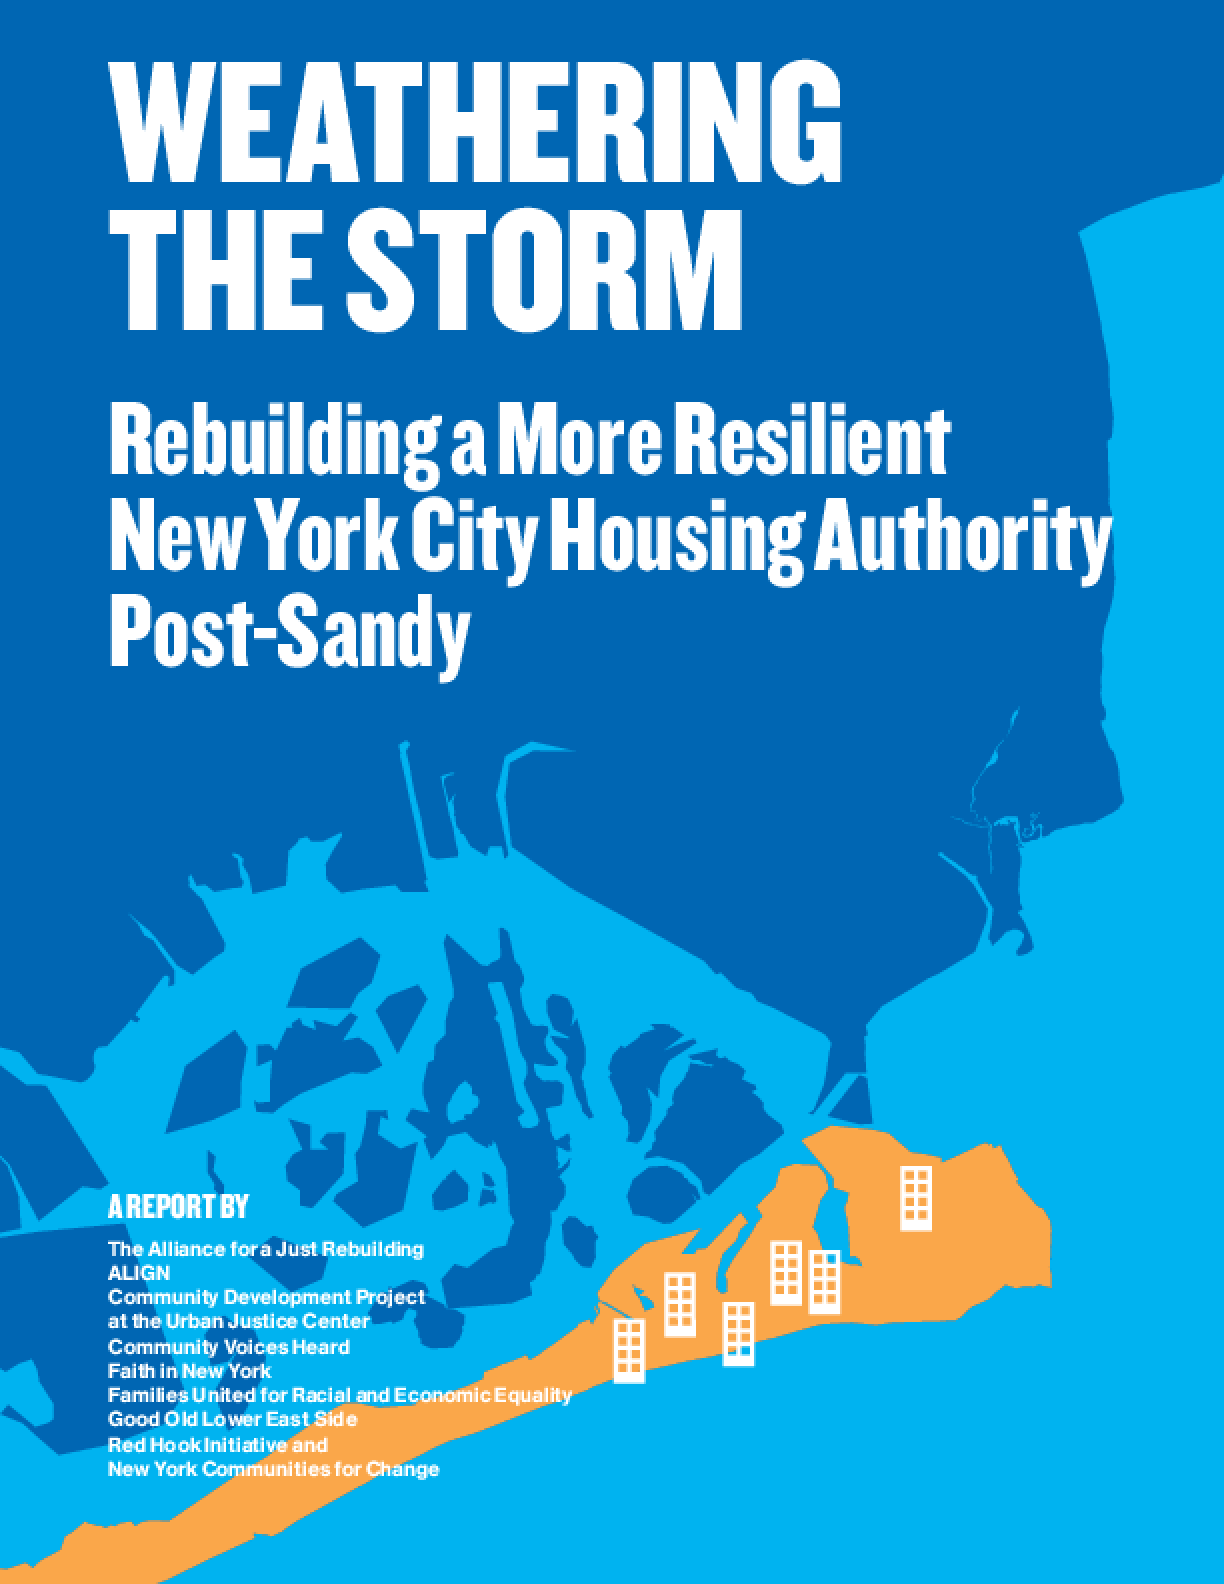 Weathering the Storm: Rebuilding a More Resilient New York City Housing Authority Post-Sandy